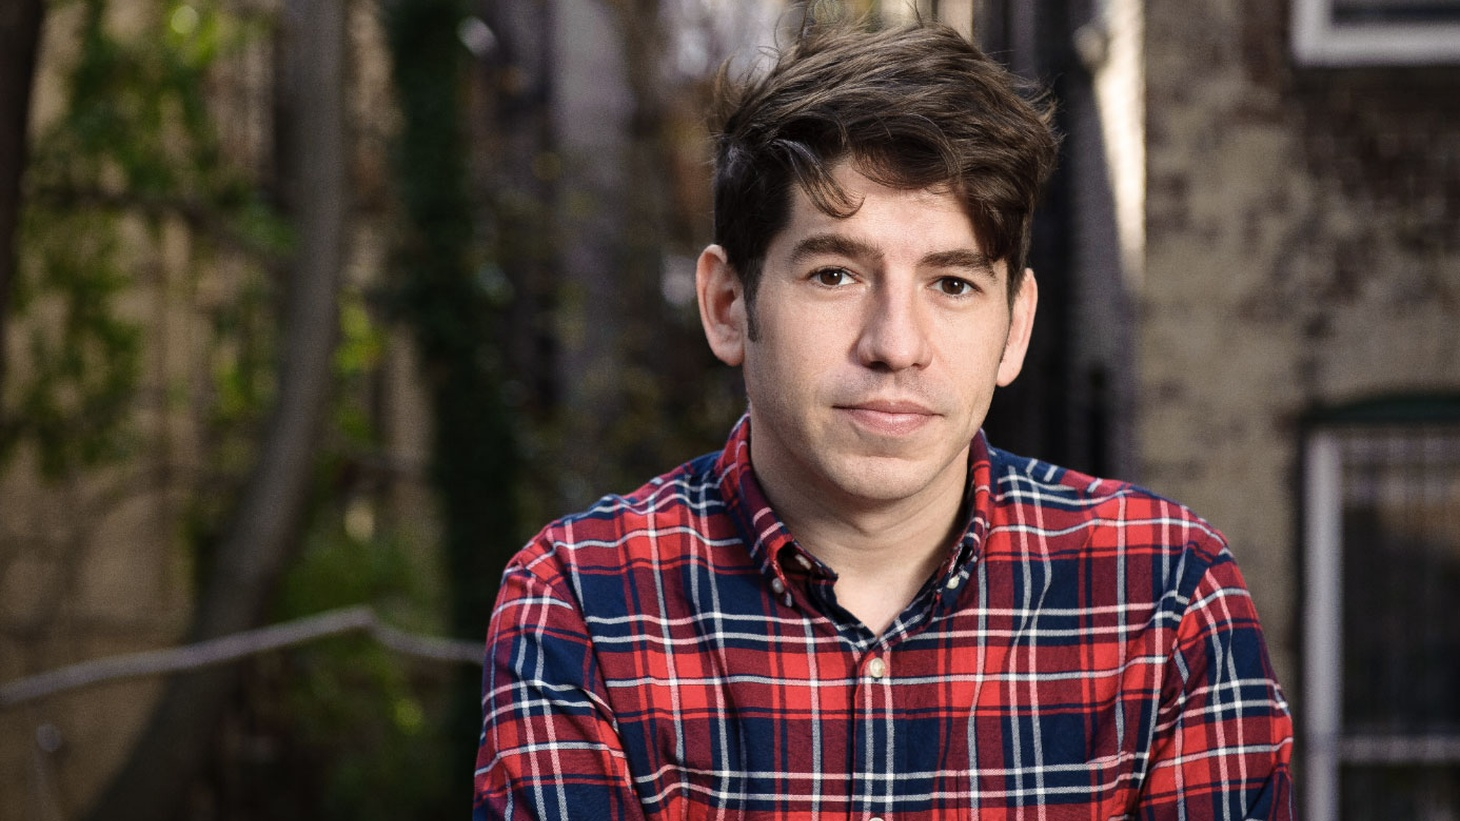 Kickstarter has crowdfunded more than $1 billion worth of projects in five years but CEO Yancey Strickler says it's just getting started.